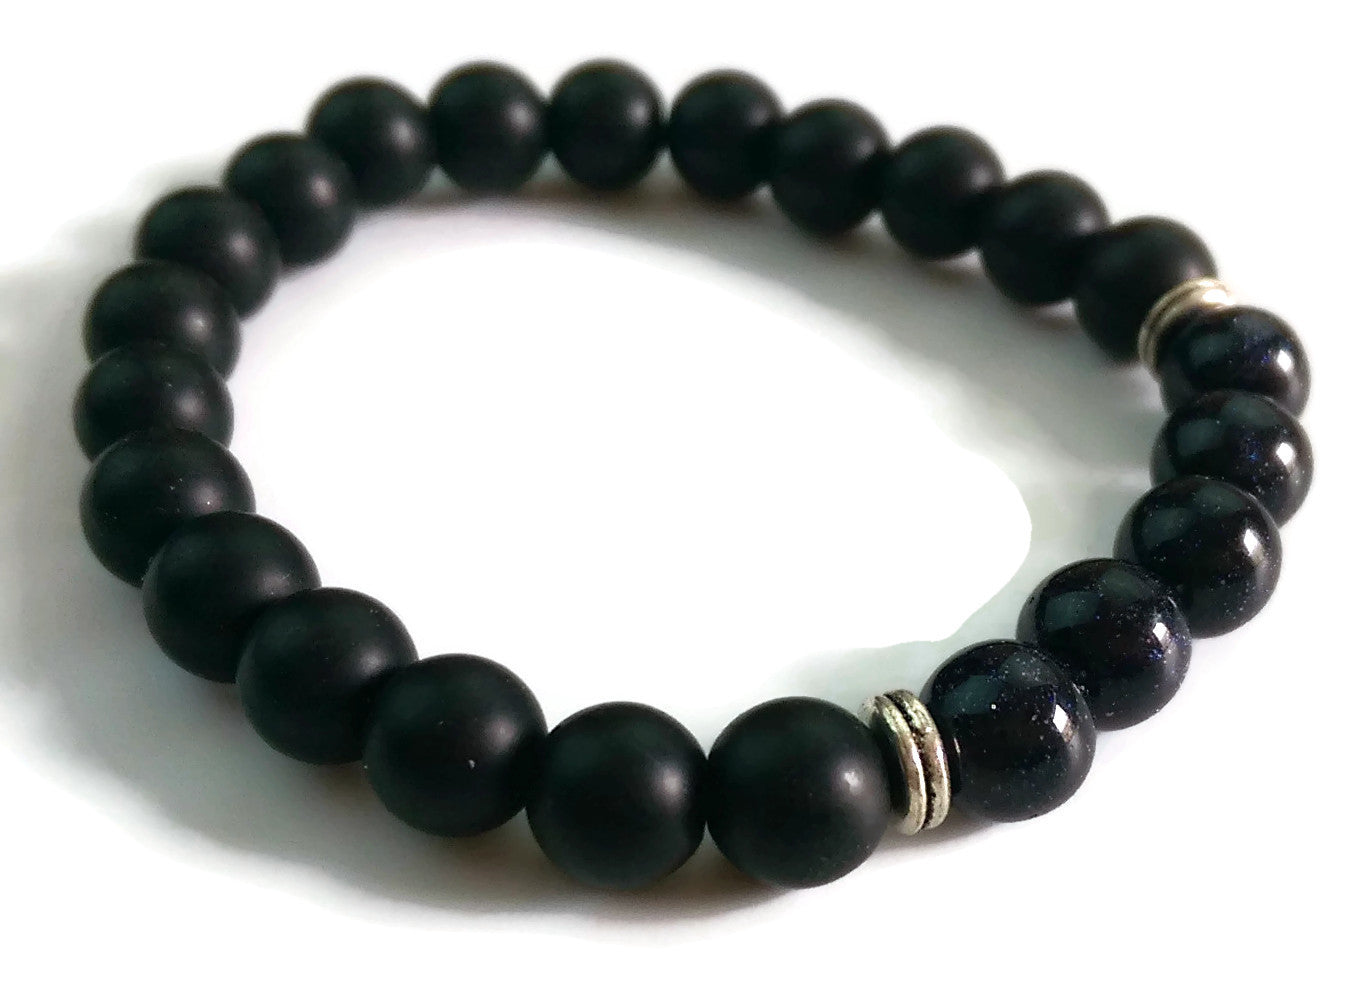 8mm Black Matte Obsidian & Blue Sandstone Stone Silver Stretch Bracelet Minimal Meditation Yoga Stackable Wrist Mala Stretch  Throat Chakra